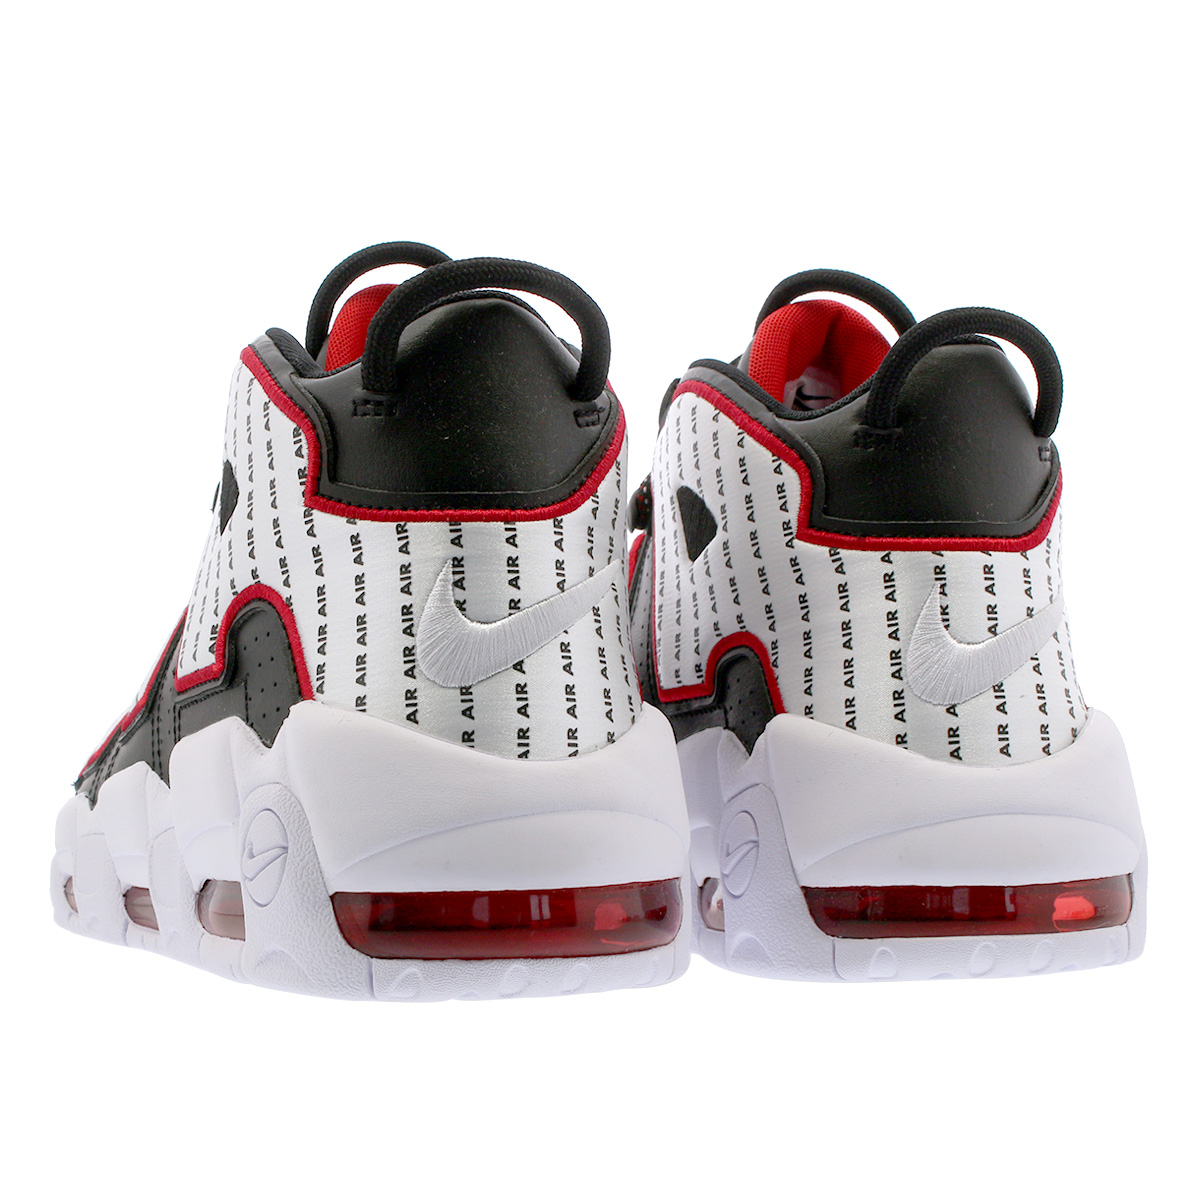 outlet store 77605 75dbd NIKE AIR MORE UPTEMPO 96 Nike air more up tempo 96 BLACK WHITE UNIVERSITY  RED av7947-001